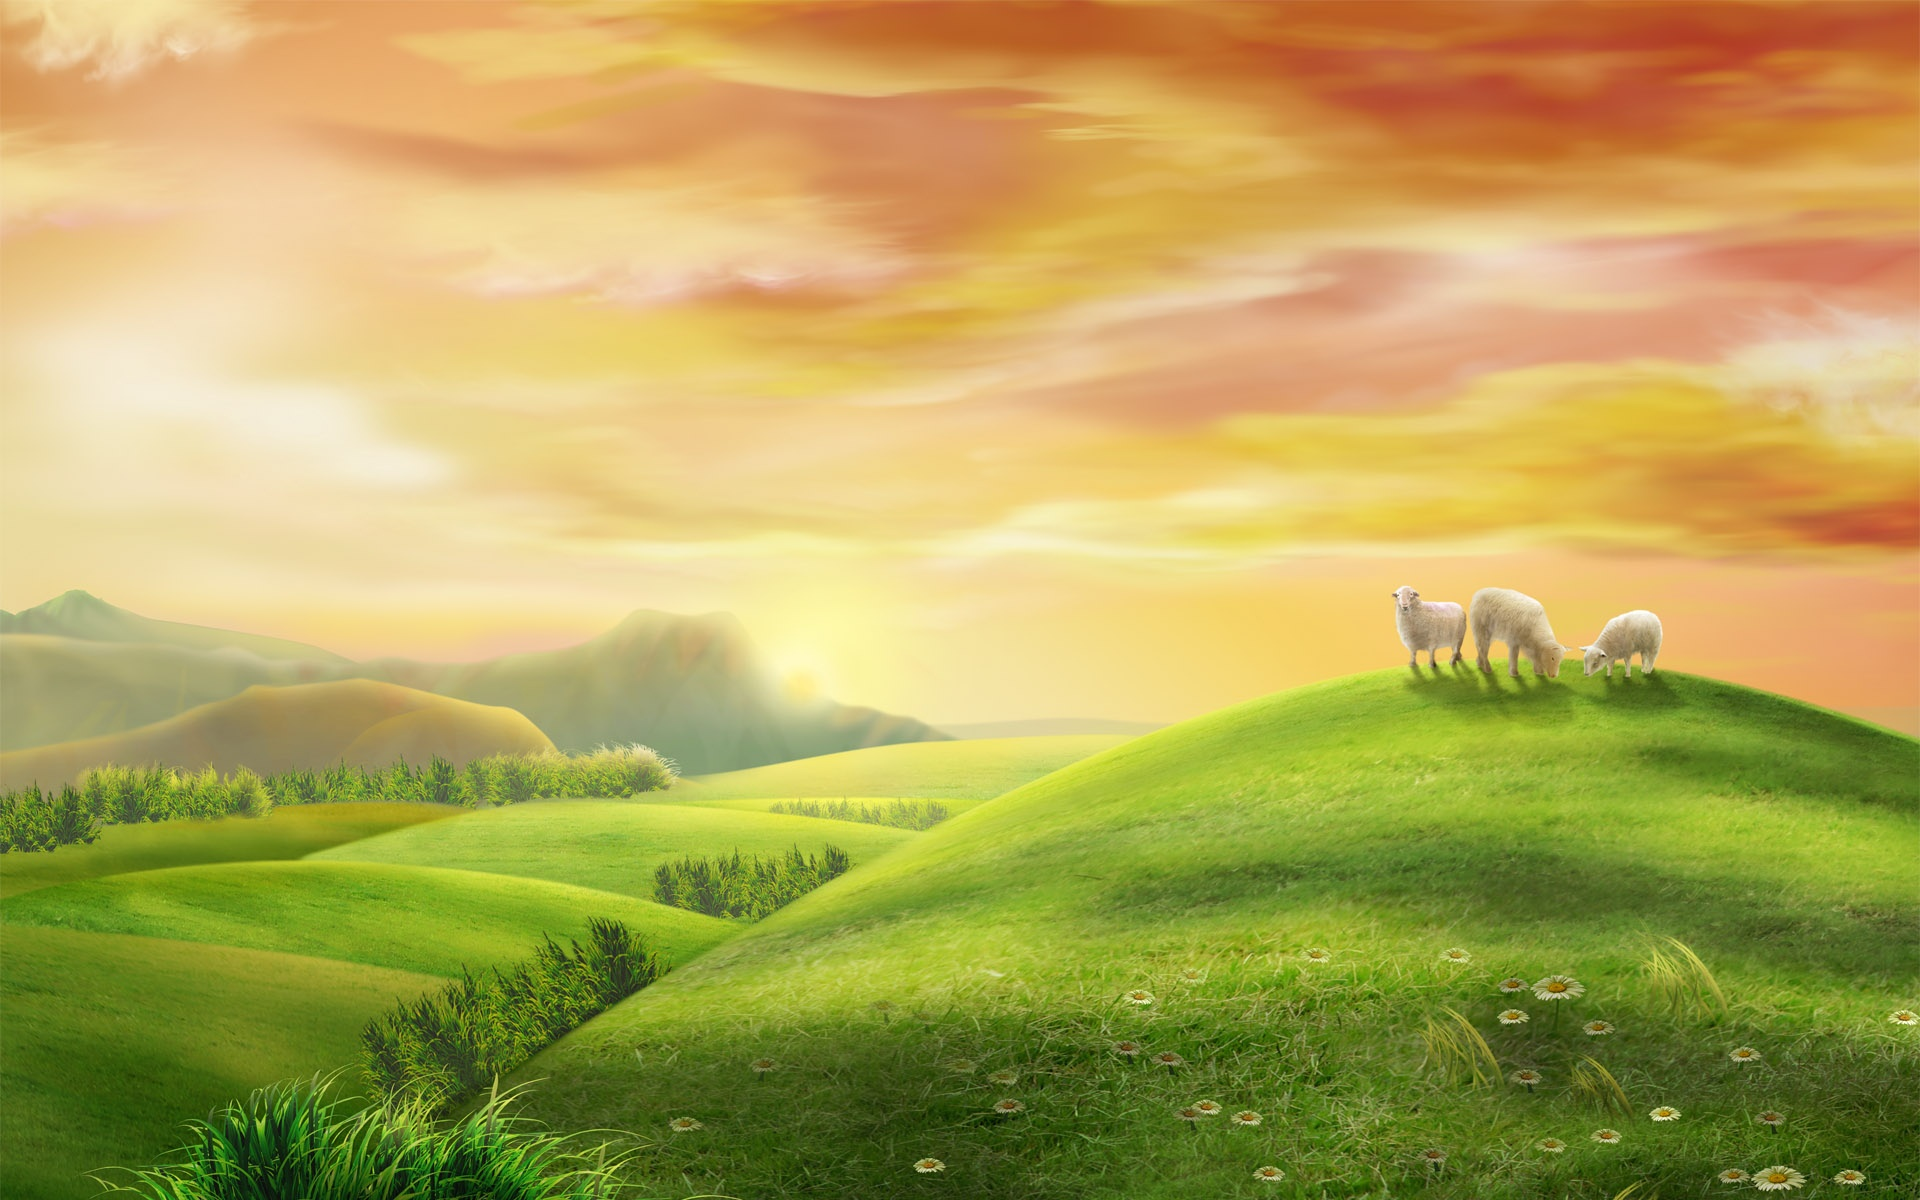 Sheep on a hill wallpaper   345617 1920x1200